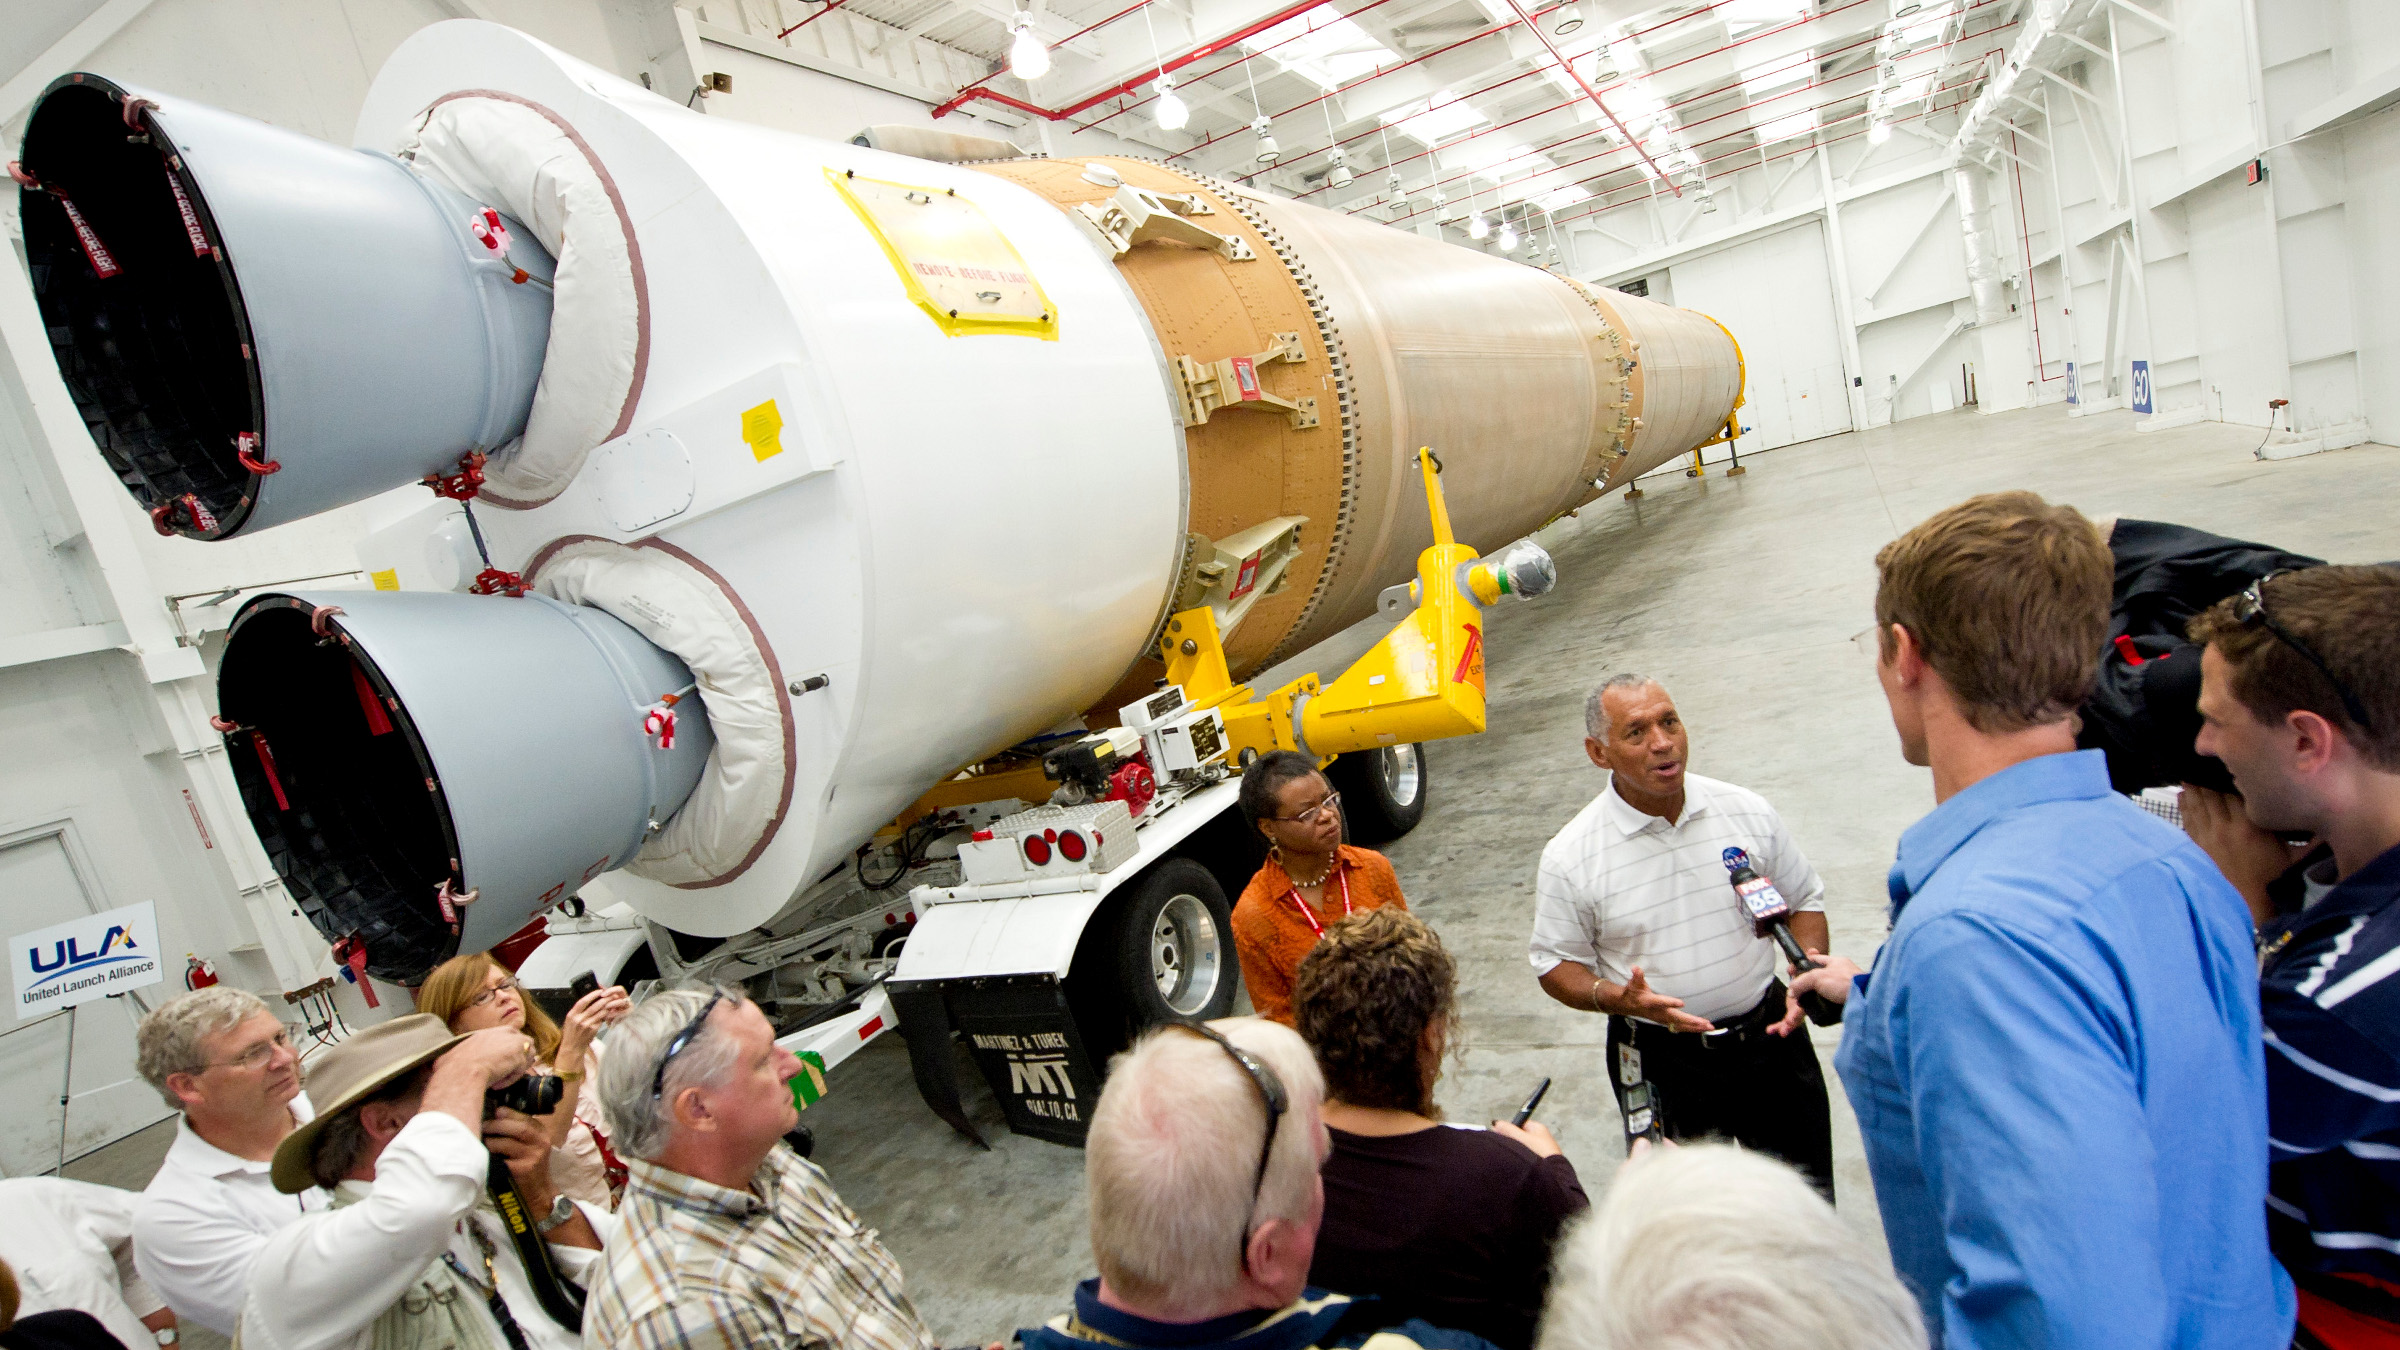 NASA Administrator Charles Bolden, stands in front of the Atlas V first stage booster while taking questions from the media, Wednesday, Sept. 7, 2011, at the Cape Canaveral Air Force Station in Cape Canaveral, Fla. The booster will help send NASA's Mars Science Laboratory Curiosity rover to Mars later this year.